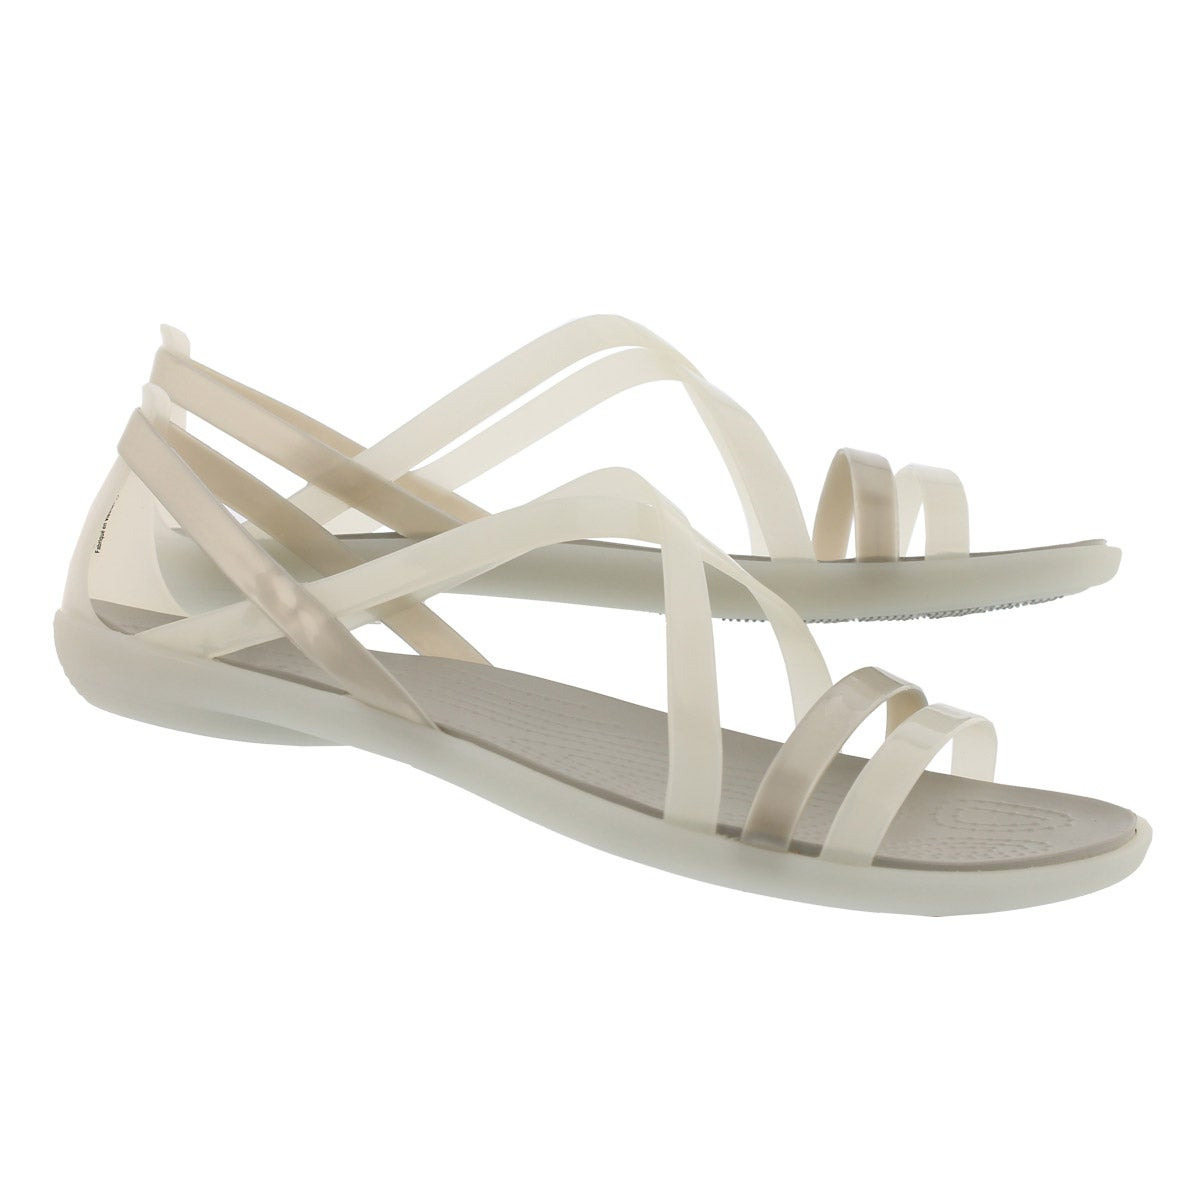 Sndale IsabellaStrappy, huître/perle fem